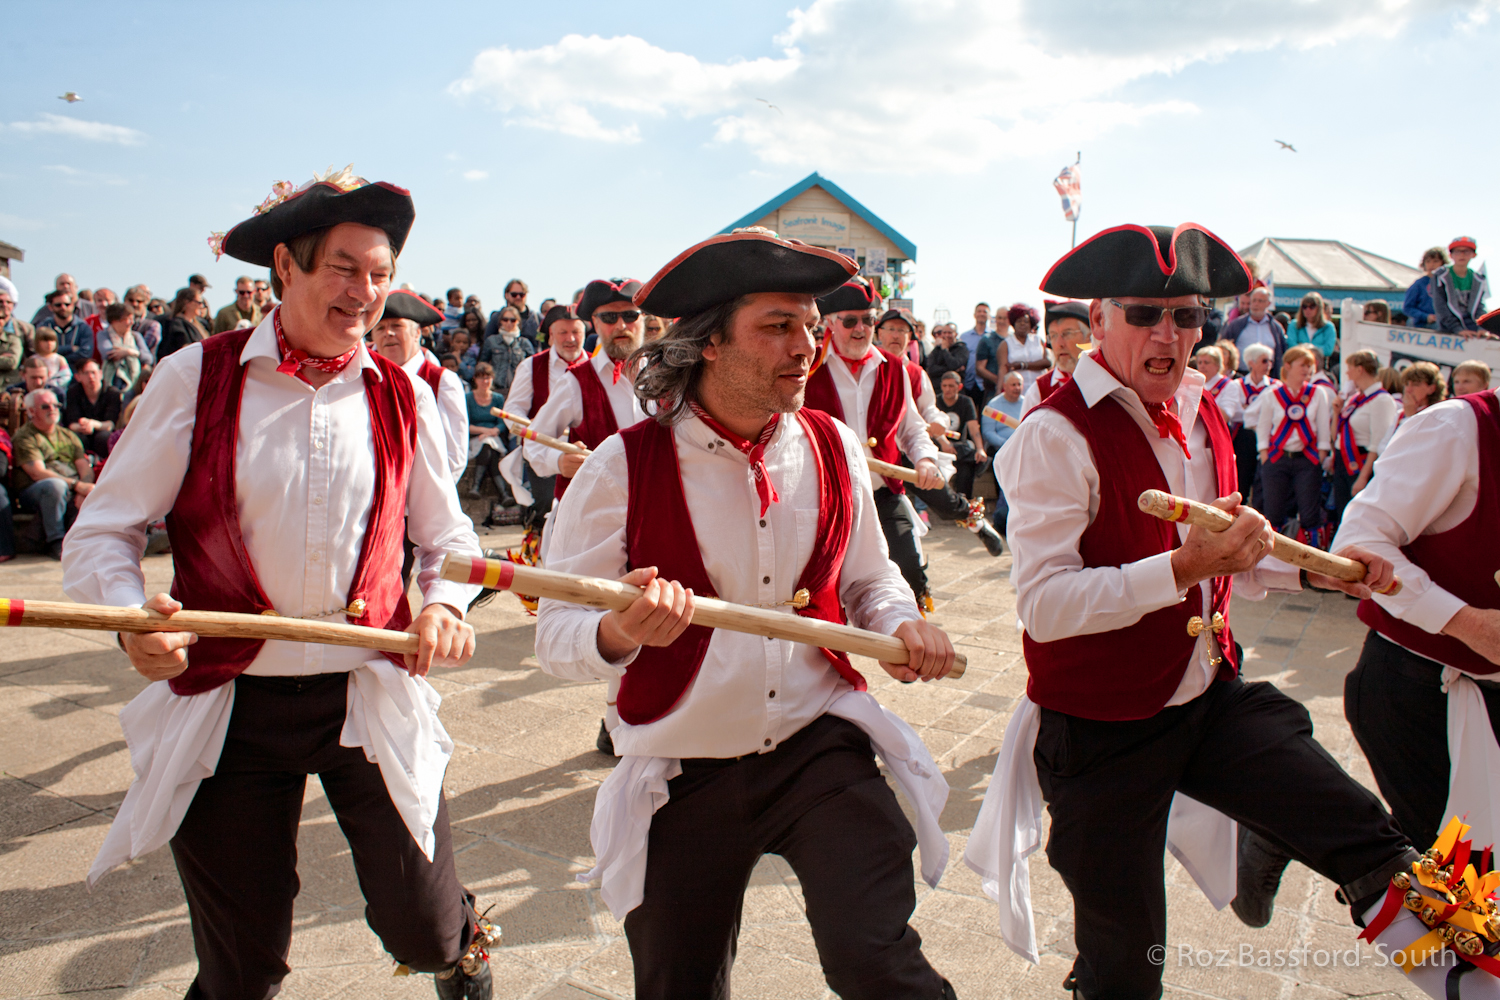 Victory Morris men dancing on Brighton Seafront